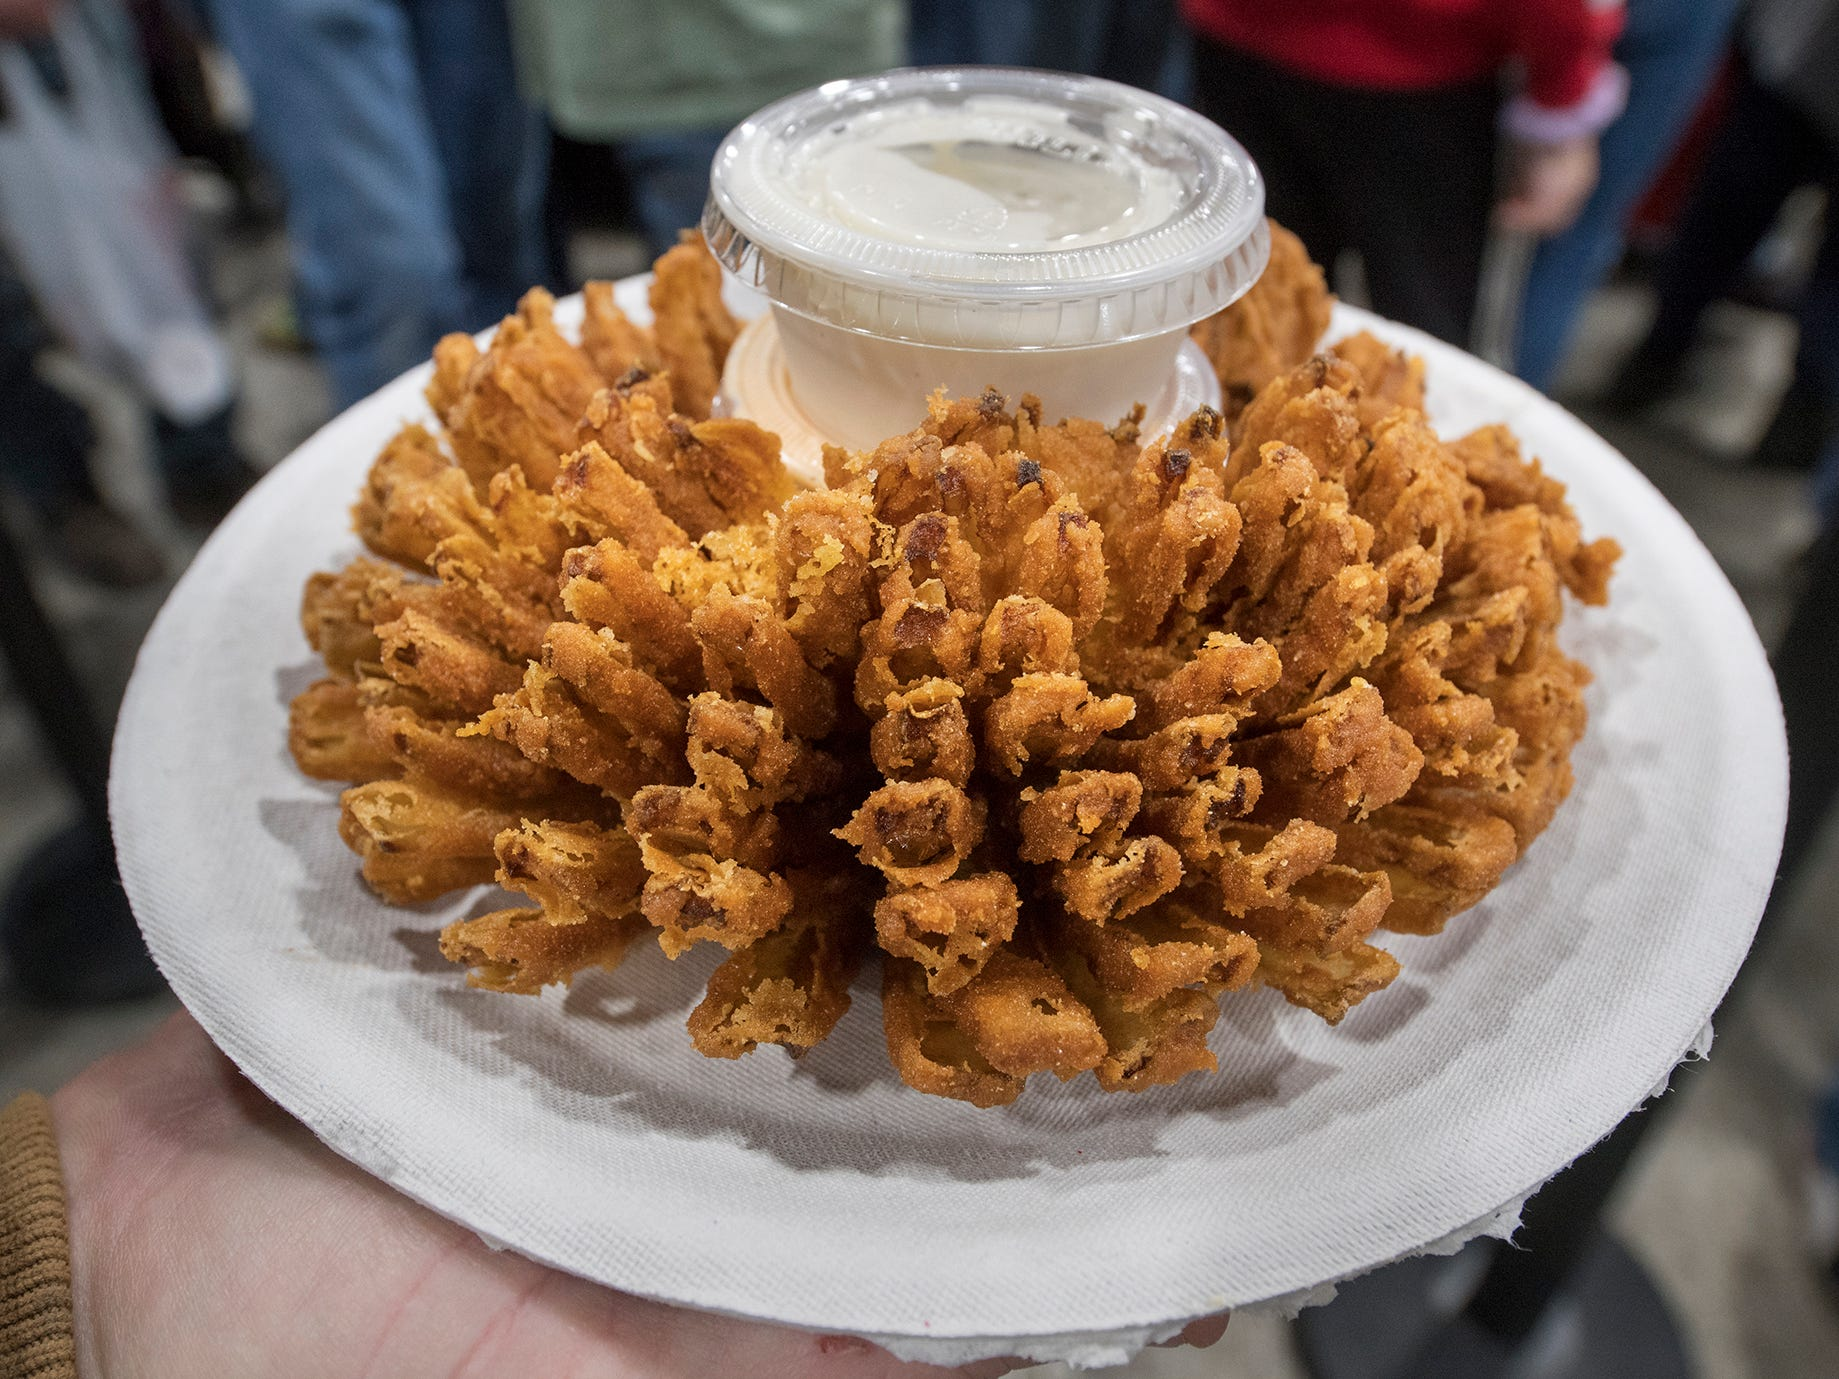 A blooming onion is carried back to a table to be eaten during The 103rd Pennsylvania Farm Show in Harrisburg Sunday January 6, 2019.